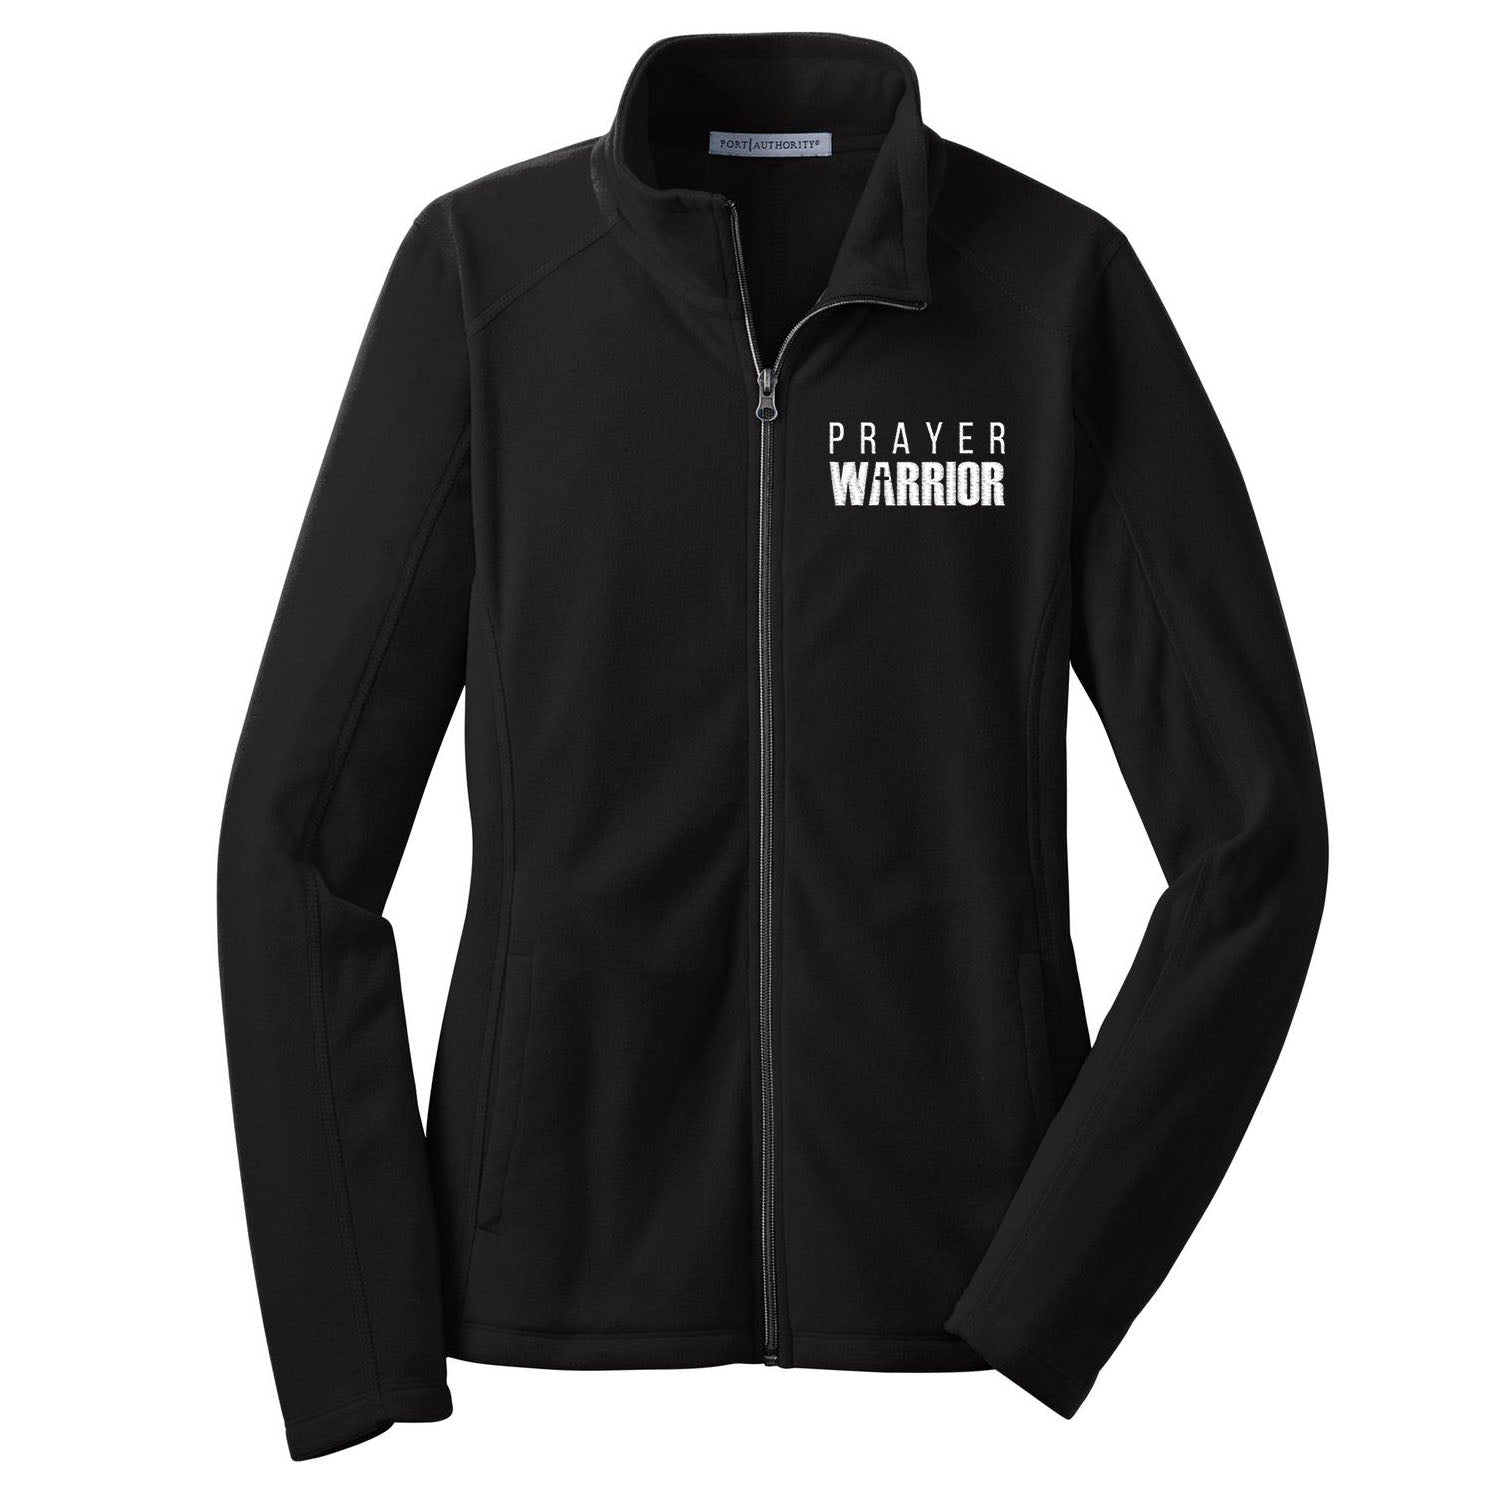 Prayer Warrior Fleece Jacket